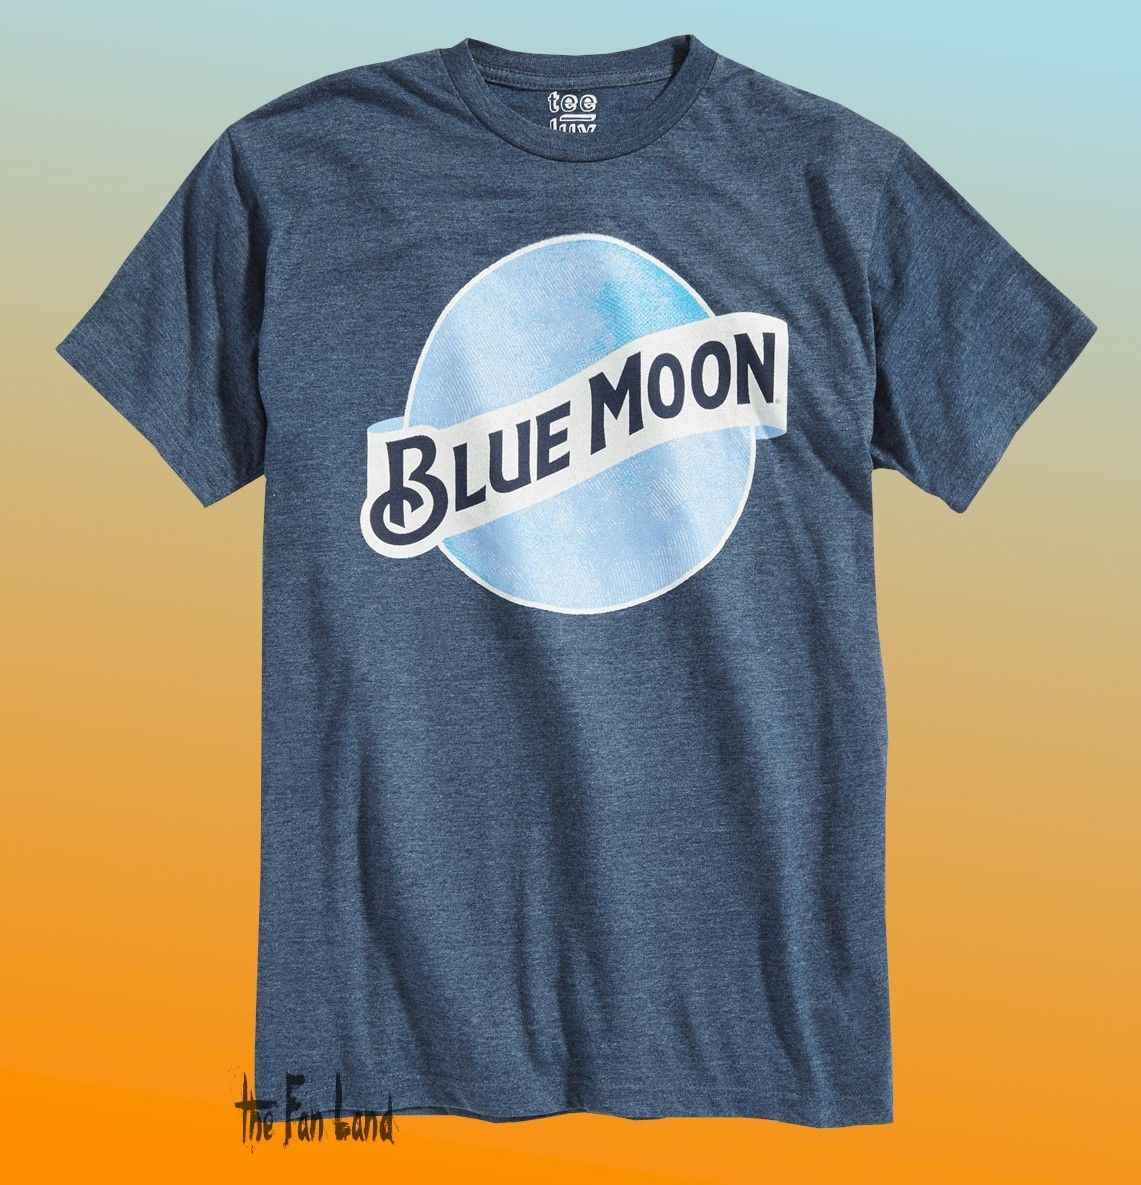 Novo Blue Moon Beer Brewing Clássico dos homens do Logotipo T-Shirt